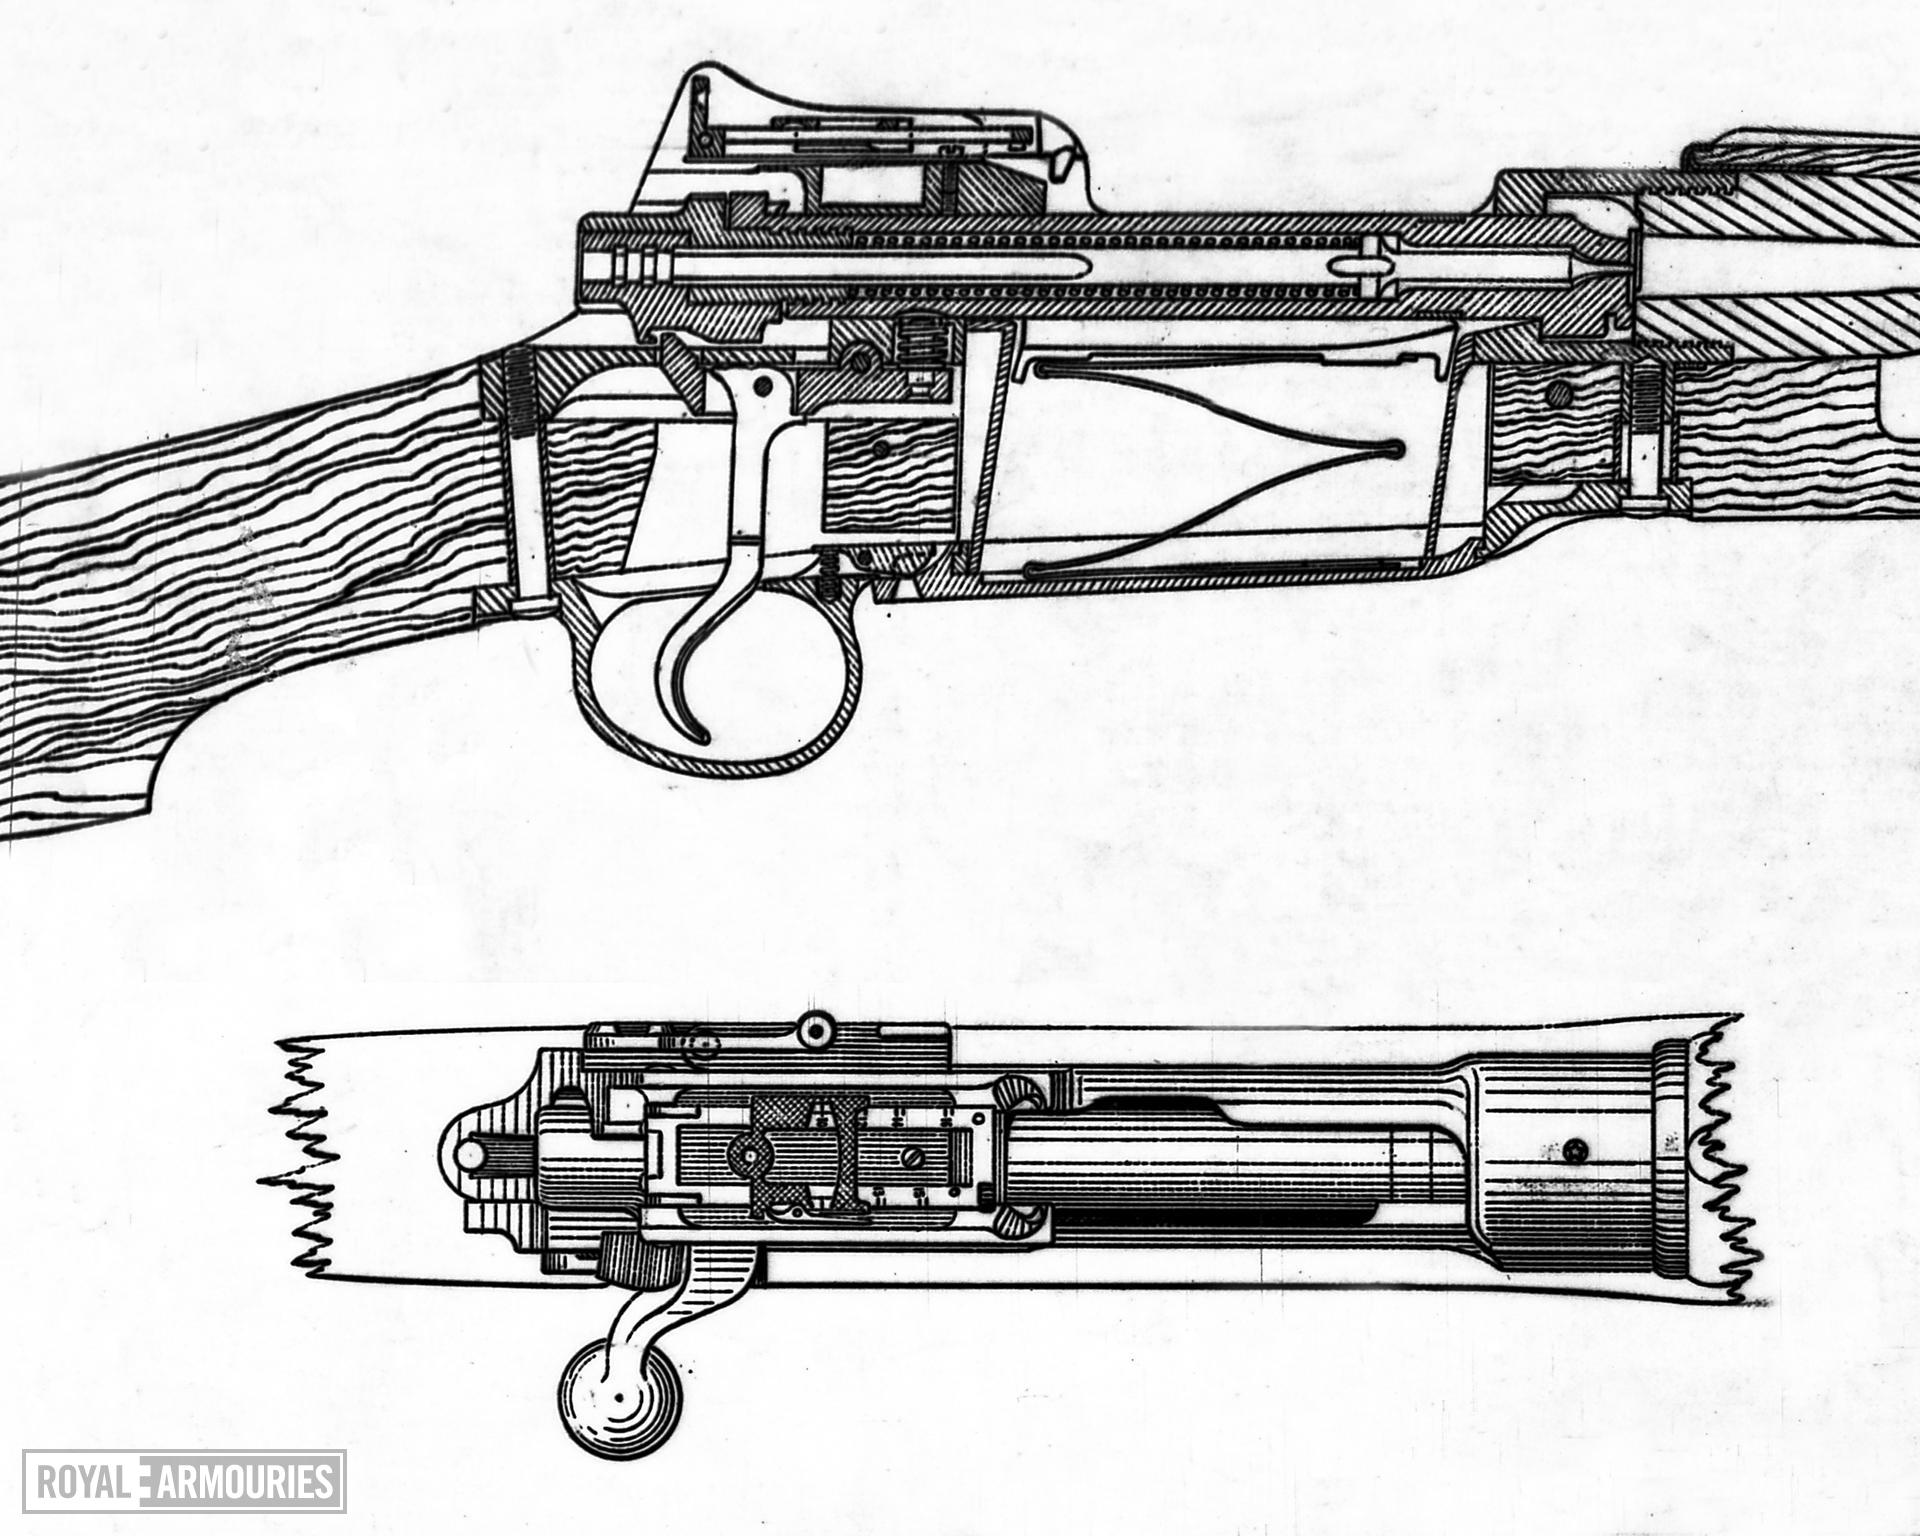 A detail from a technical drawing, SAID 2058, showing the action of the Pattern 1914 rifle with its two strong locking lugs at the head of the bolt (SAID 2058) © Royal Armouries